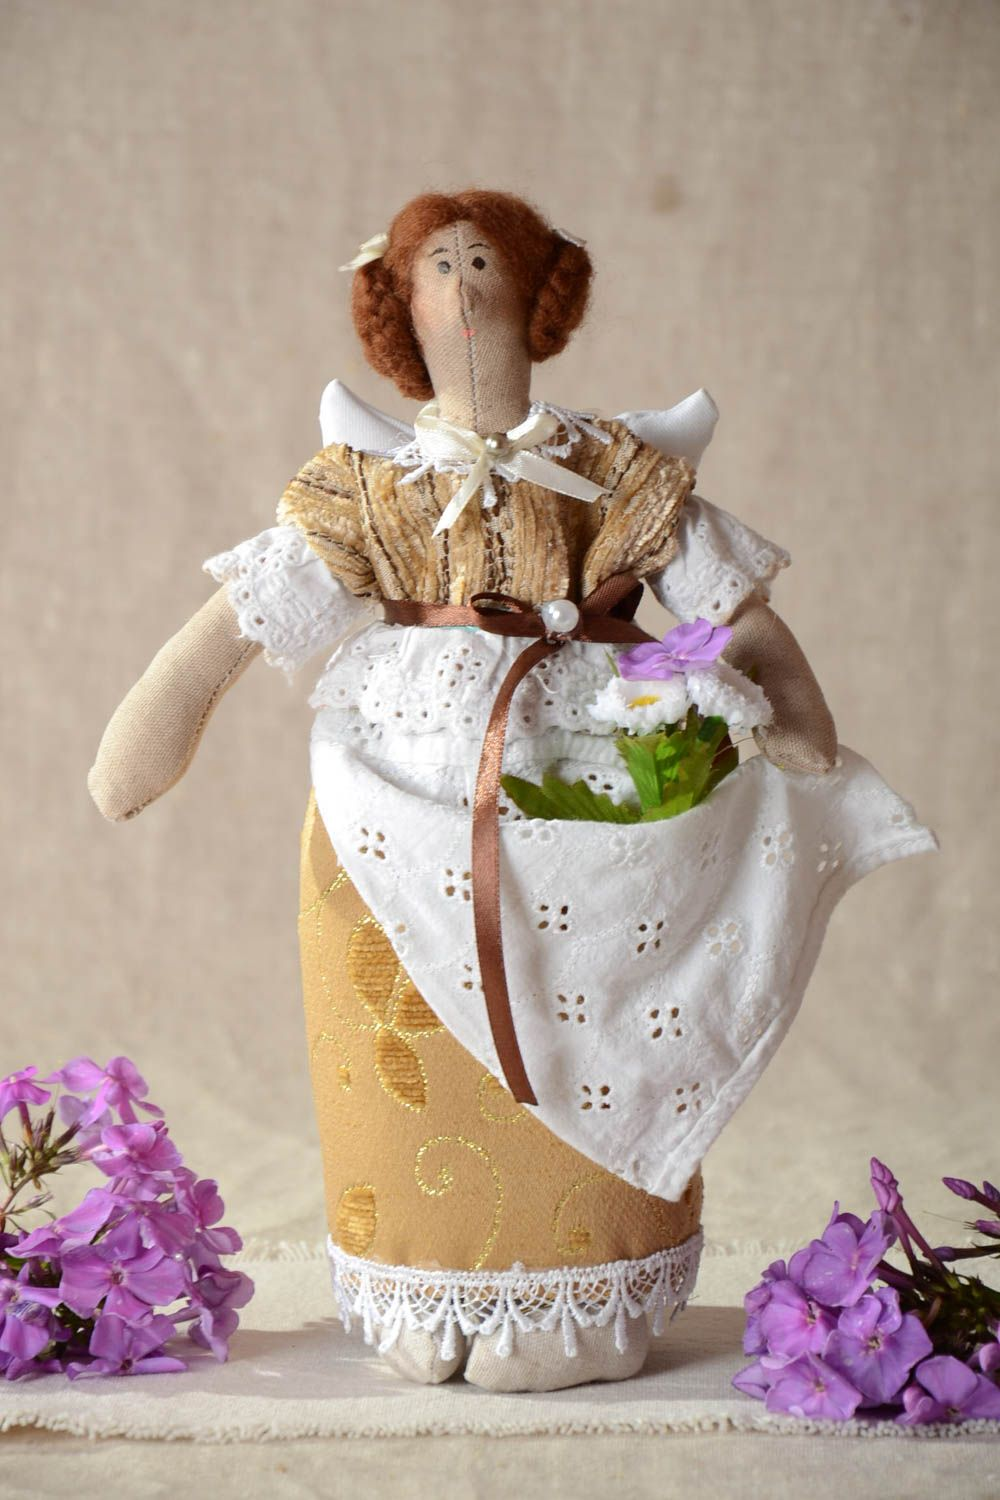 Designer handmade doll cute stylish toy present interesting home accessories photo 1